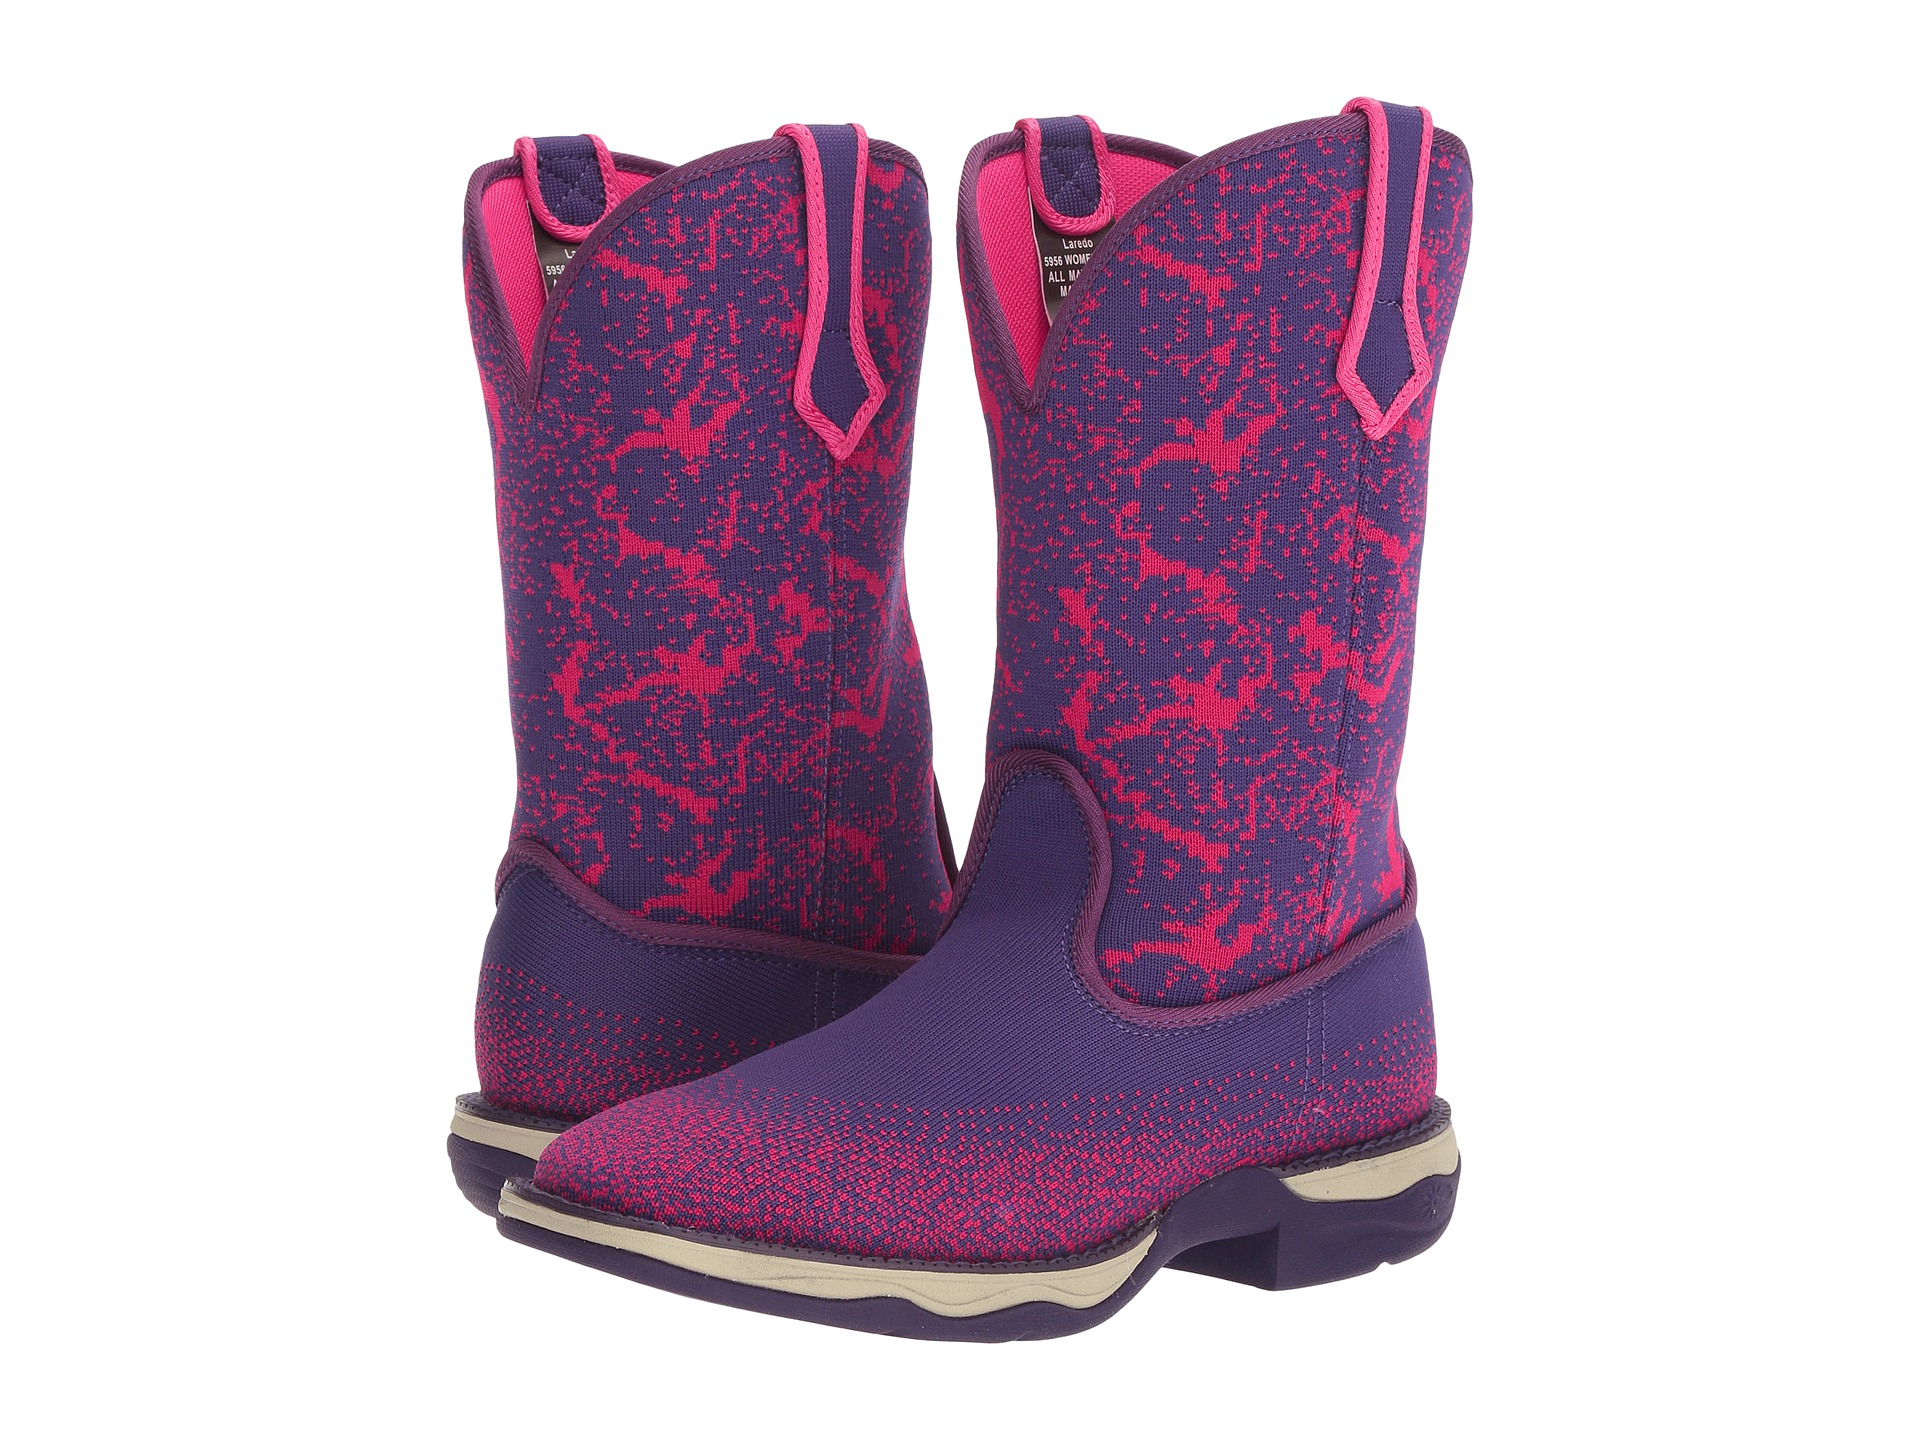 Boots, Cowboy Boots, Purple | Shipped Free at Zappos